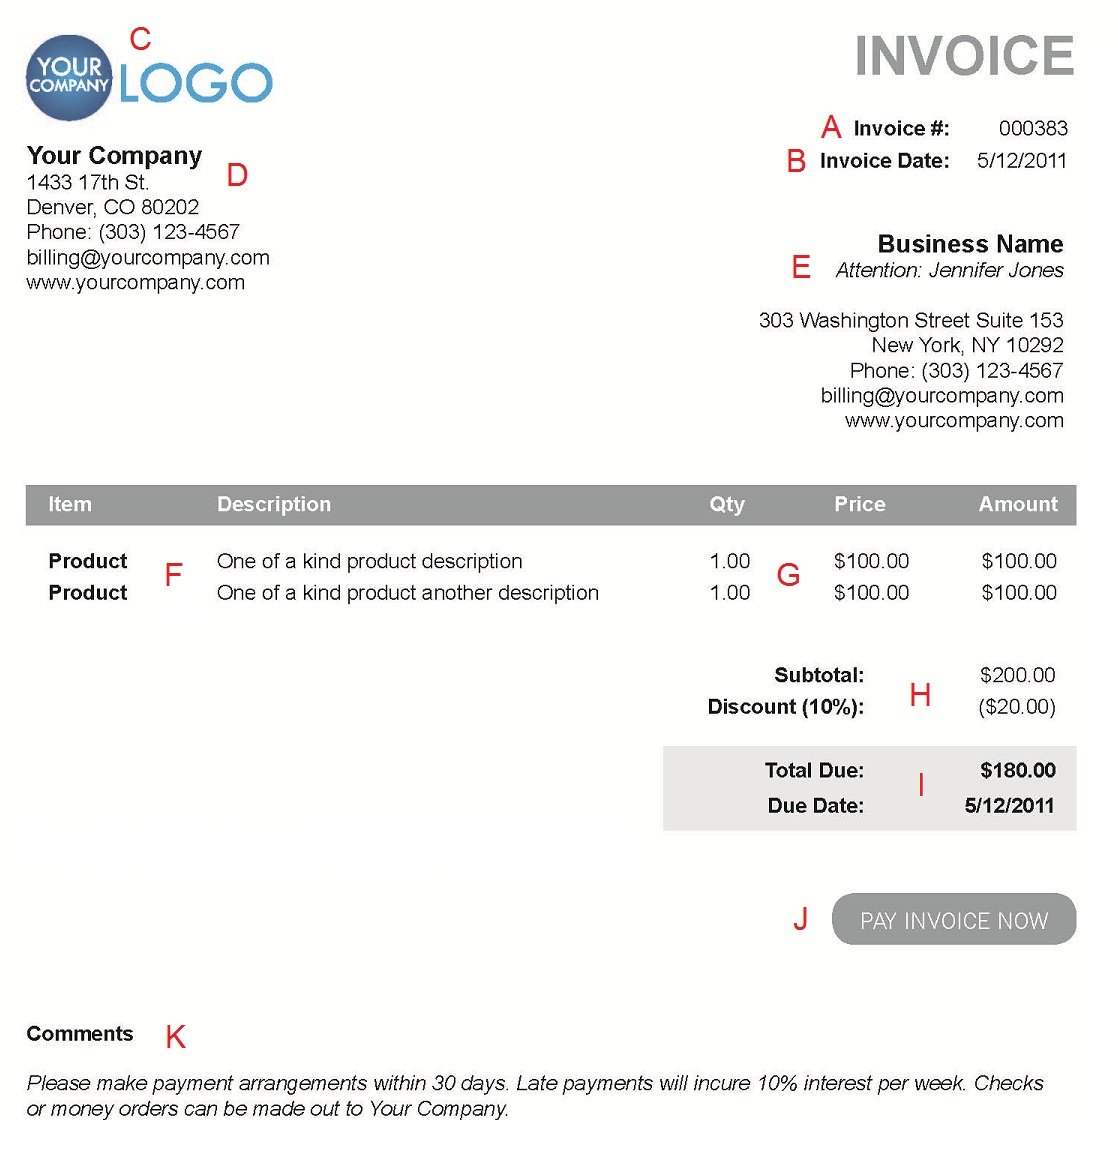 Coolmathgamesus  Mesmerizing The  Different Sections Of An Electronic Payment Invoice With Goodlooking A  With Comely Walmart Extended Warranty Lost Receipt Also Groupon Receipt In Addition Fedex Shipping Receipt And Af Hand Receipt As Well As To Confirm The Receipt Additionally Ticket Receipt From Paysimplecom With Coolmathgamesus  Goodlooking The  Different Sections Of An Electronic Payment Invoice With Comely A  And Mesmerizing Walmart Extended Warranty Lost Receipt Also Groupon Receipt In Addition Fedex Shipping Receipt From Paysimplecom